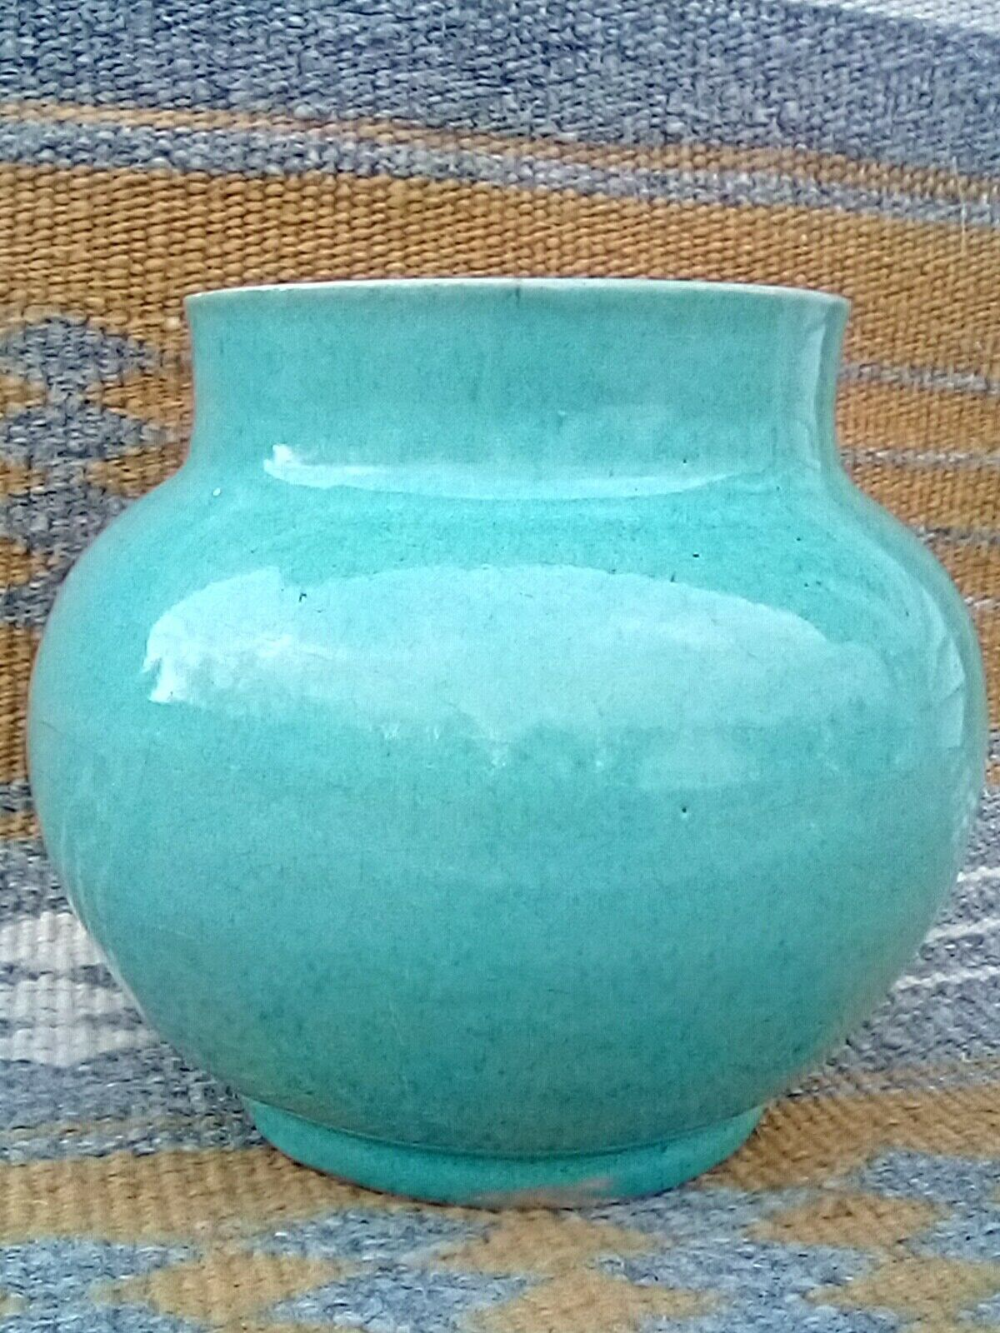 Hand Thrown and Formed Stoneware Blue Cobalt Art Pottery Vase with Faces